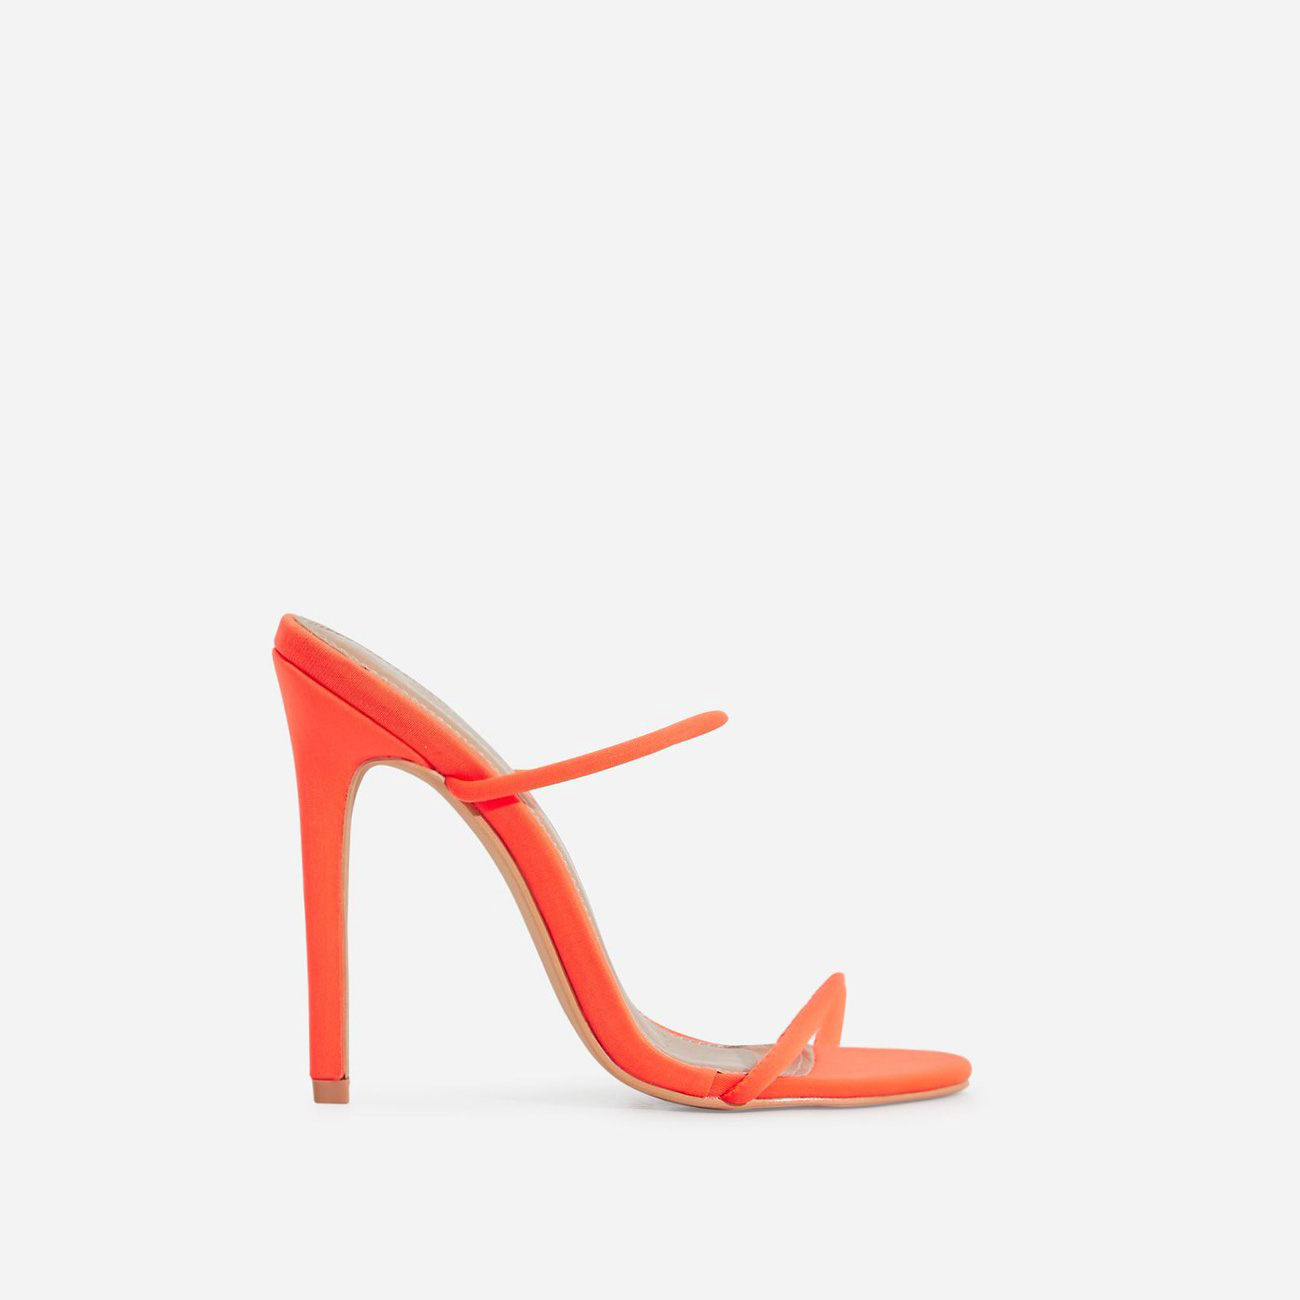 Helix Barely There Mule In Neon Orange Lycra